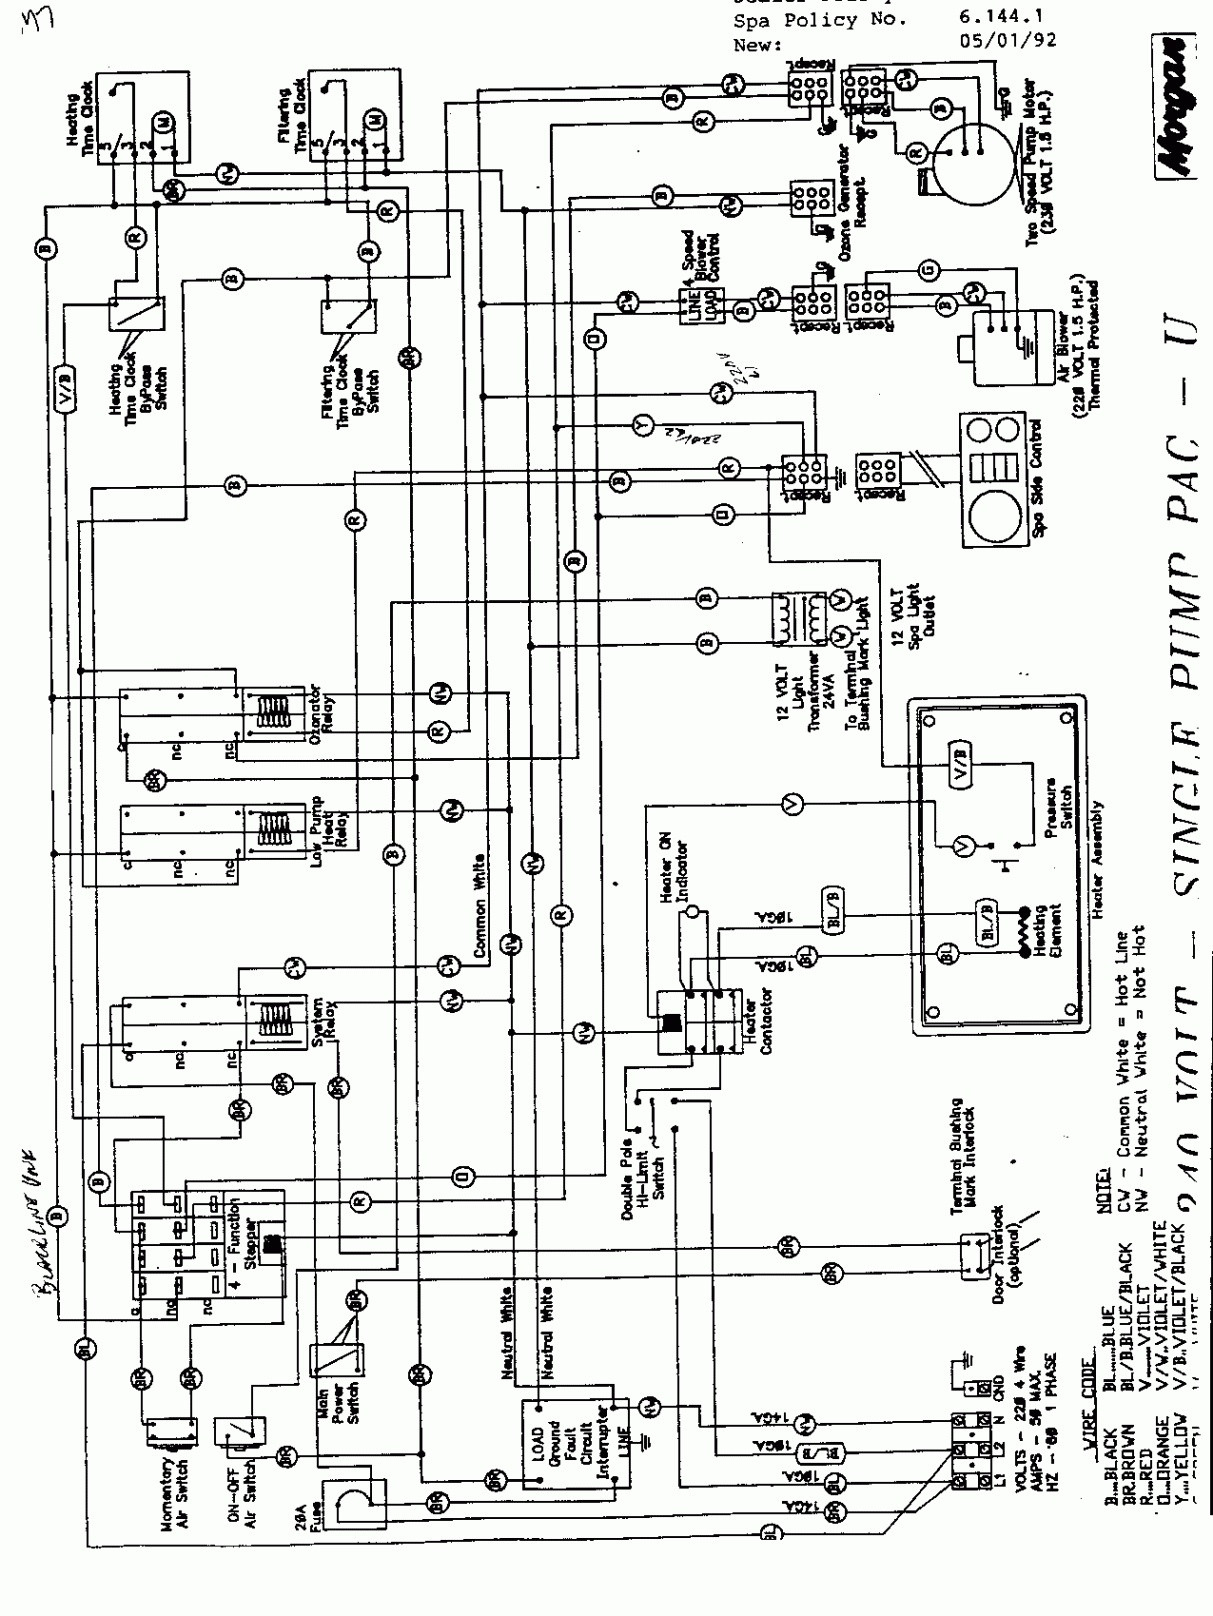 Vita Spa L200 Wiring Diagram Gallery